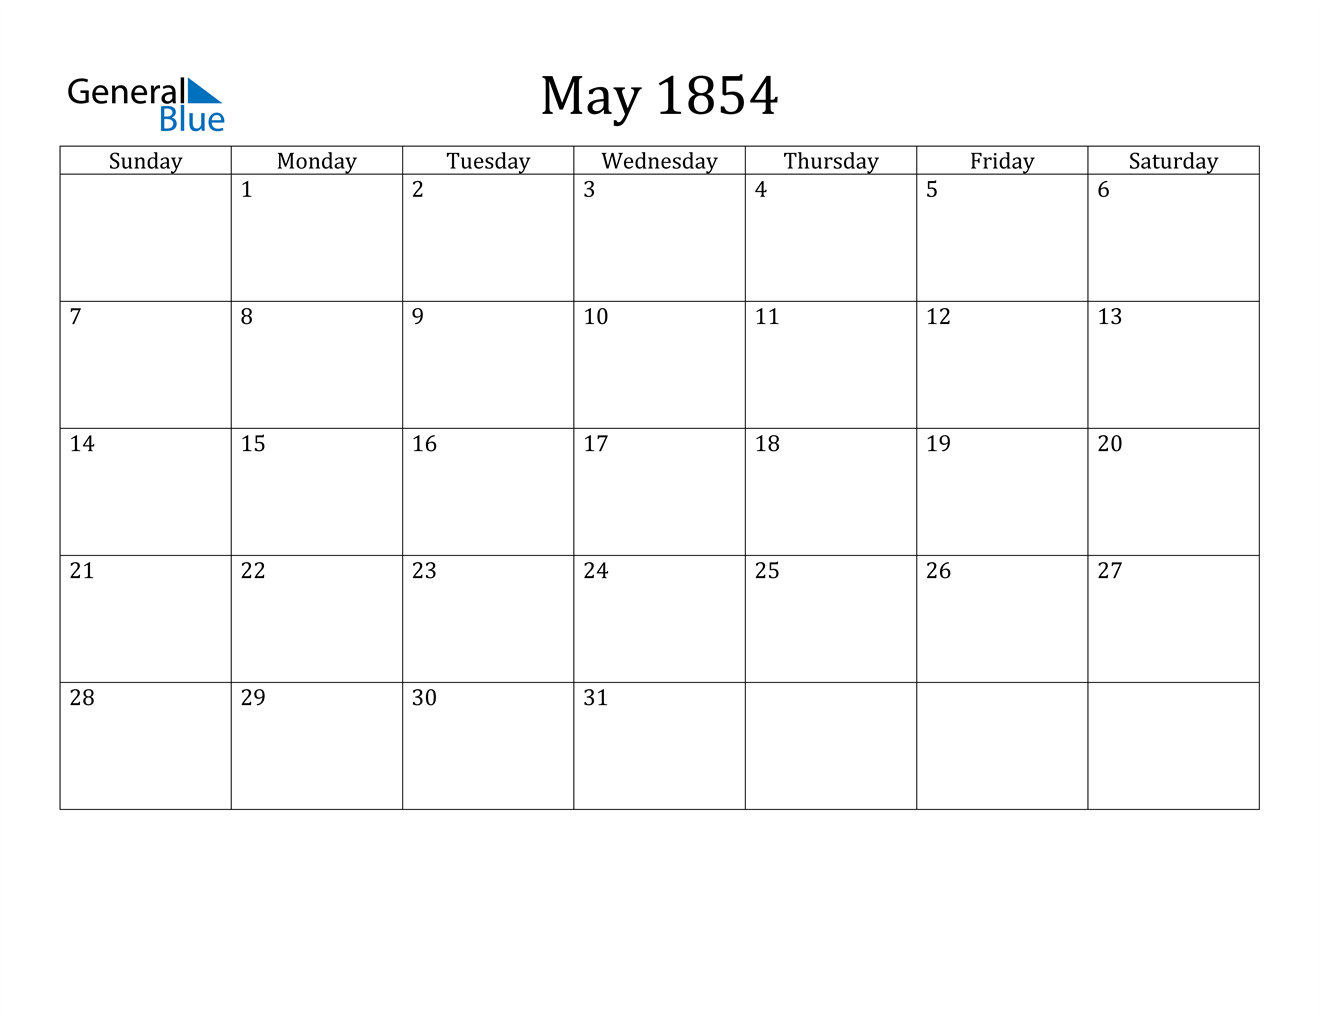 Image of May 1854 Calendar